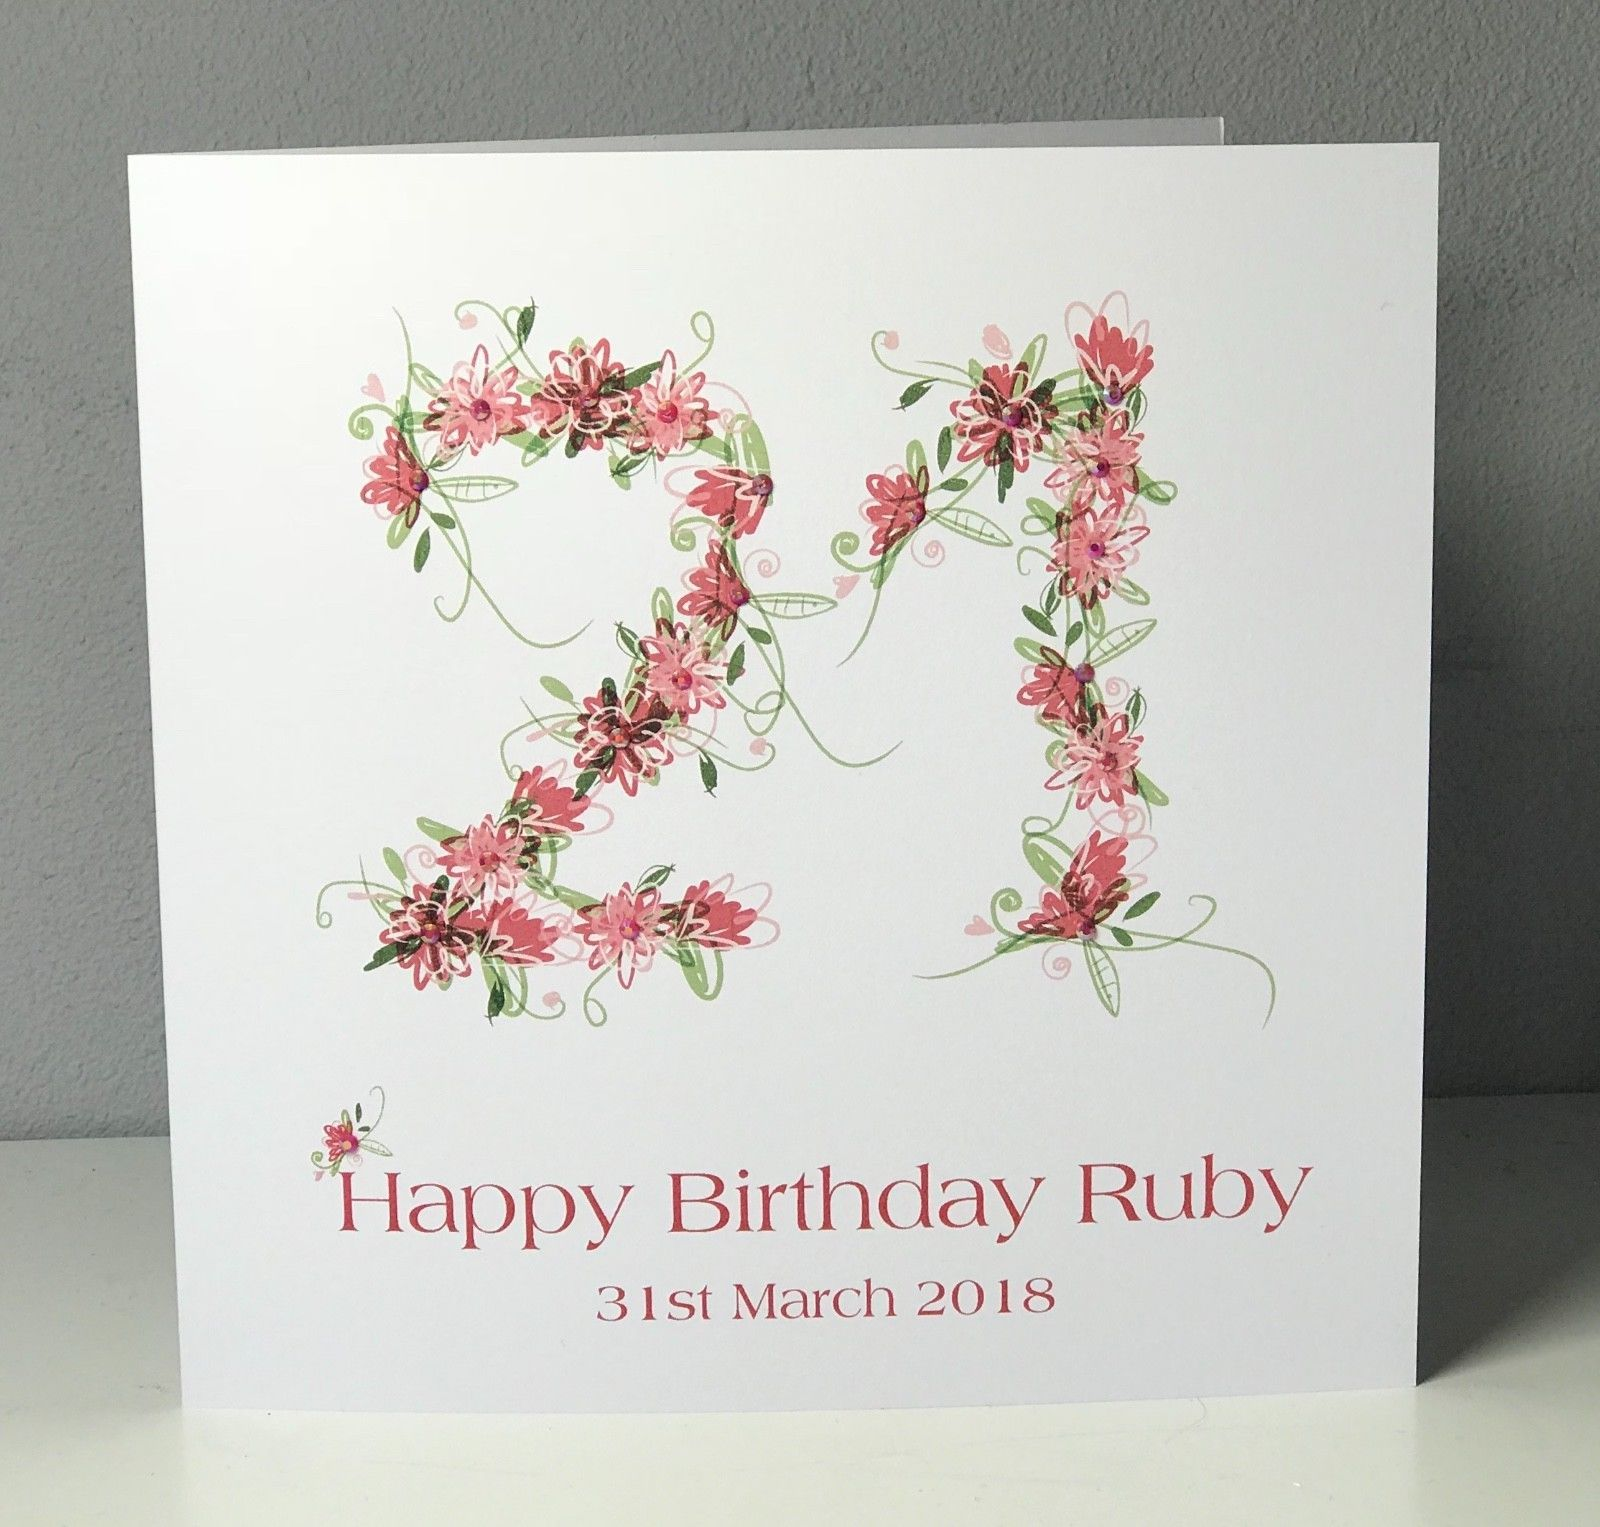 4 99 Gbp Personalised 21st 8 X 8 Birthday Card Flowers 18th 30th 16th Ebay Home Garden Birthday Cards 8th Birthday Cards